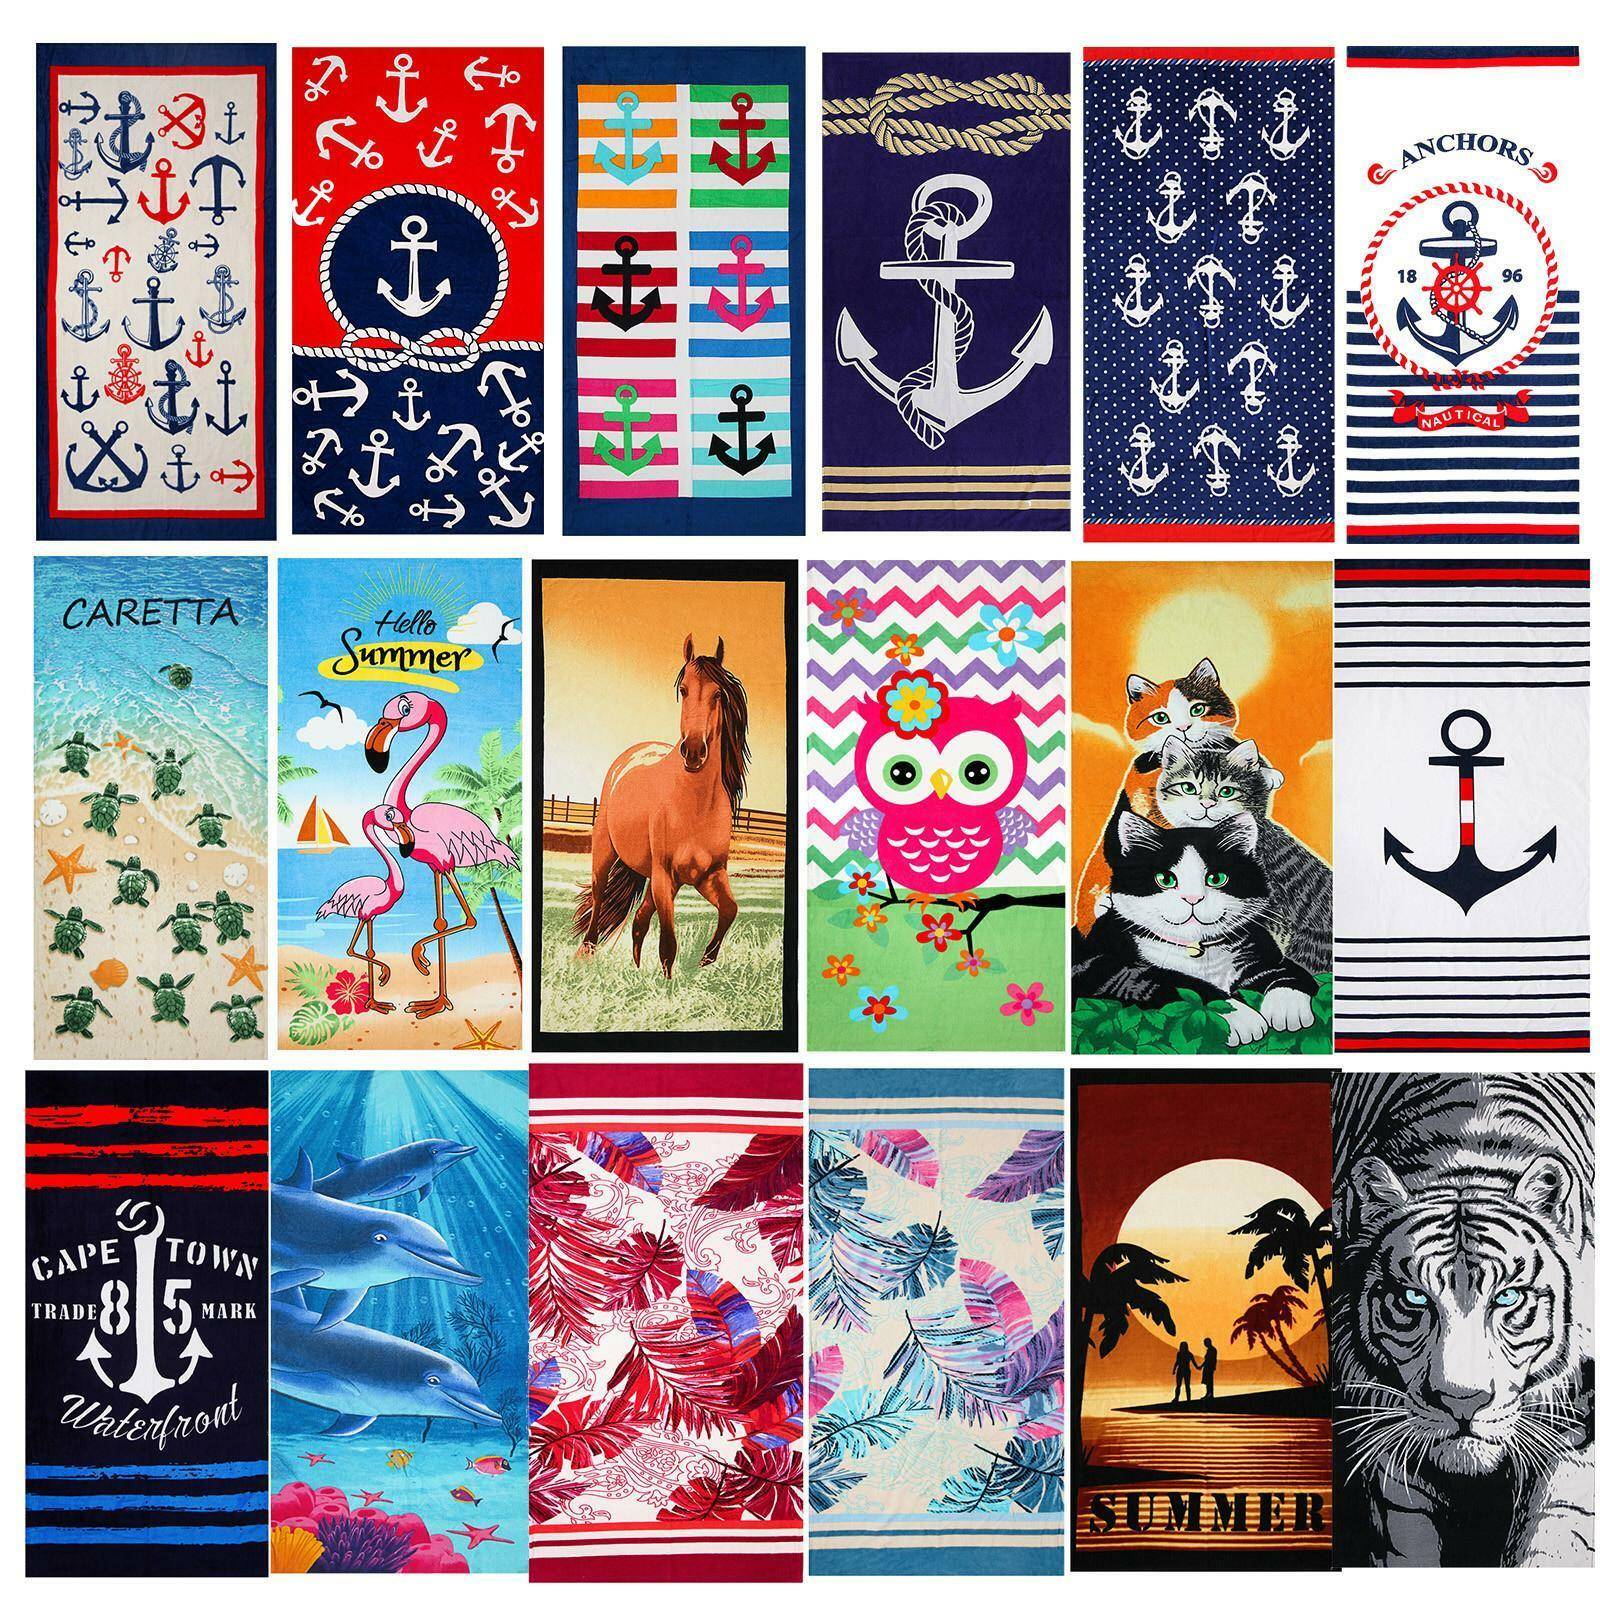 Hencely 100% Cotton Large Beach Towel, Soft Quick Dry 30 x 6